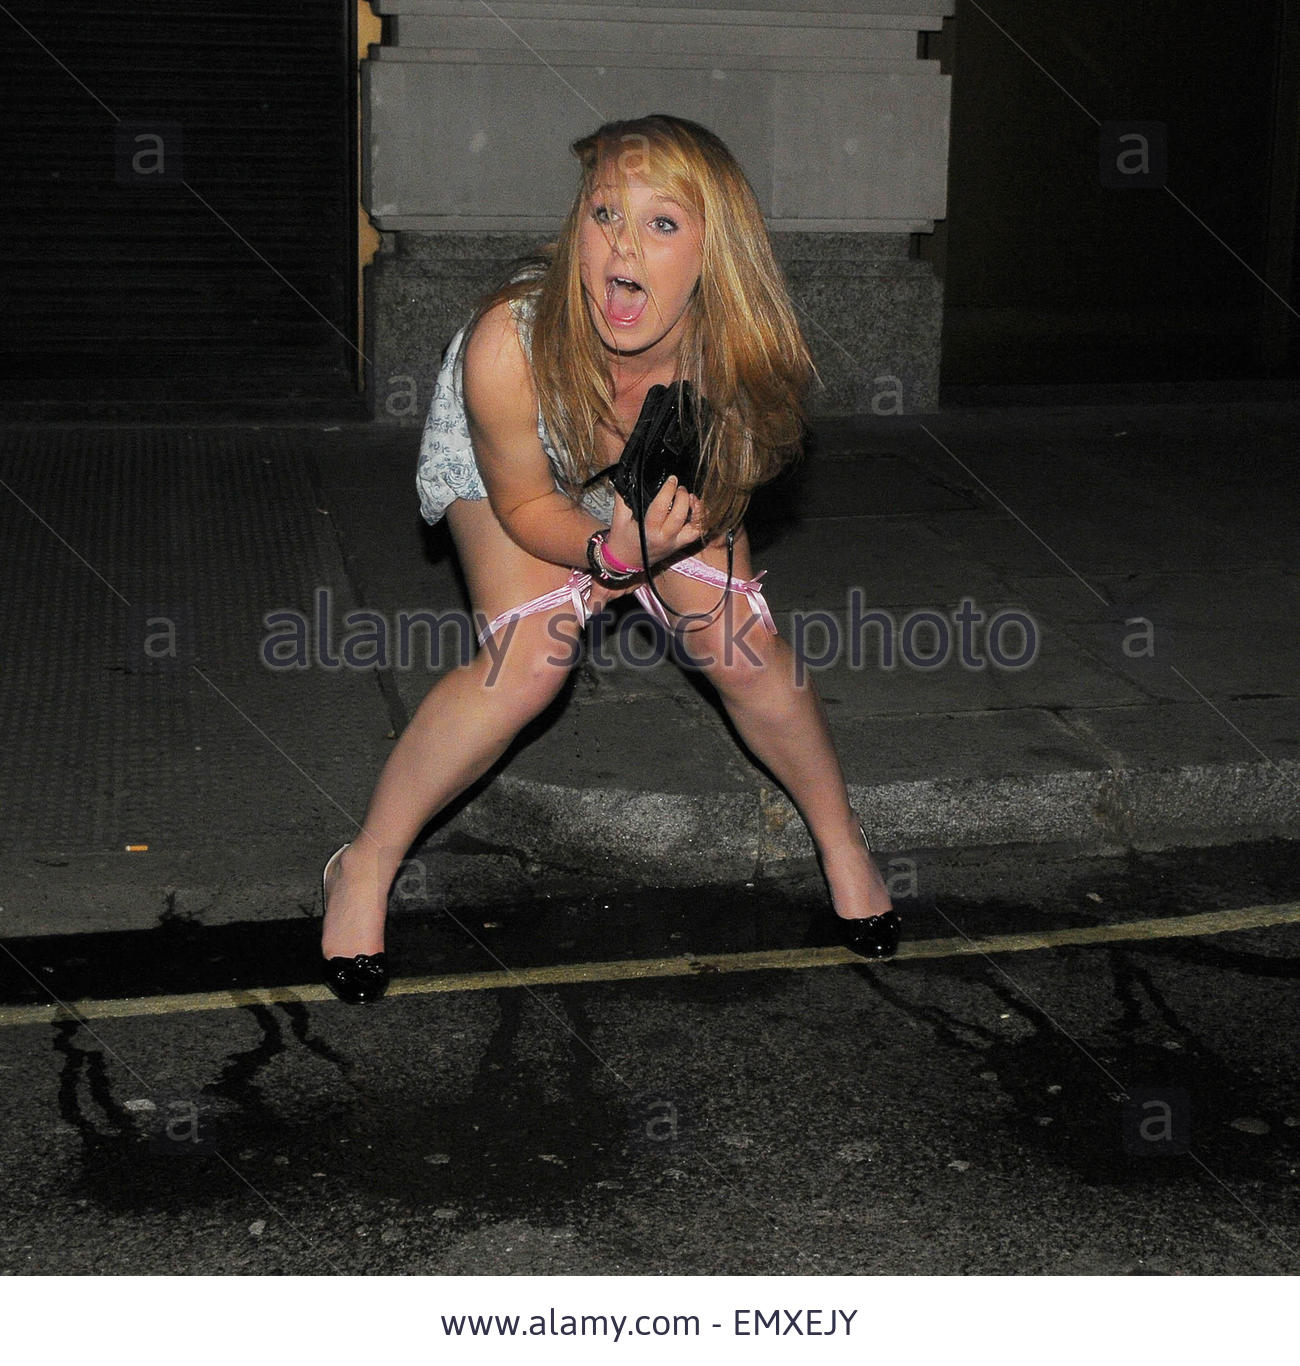 Name:  04november2009-london-a-week-after-a-girl-in-cardiff-was-pictured-EMXEJY.jpg Views: 105 Size:  262.3 KB